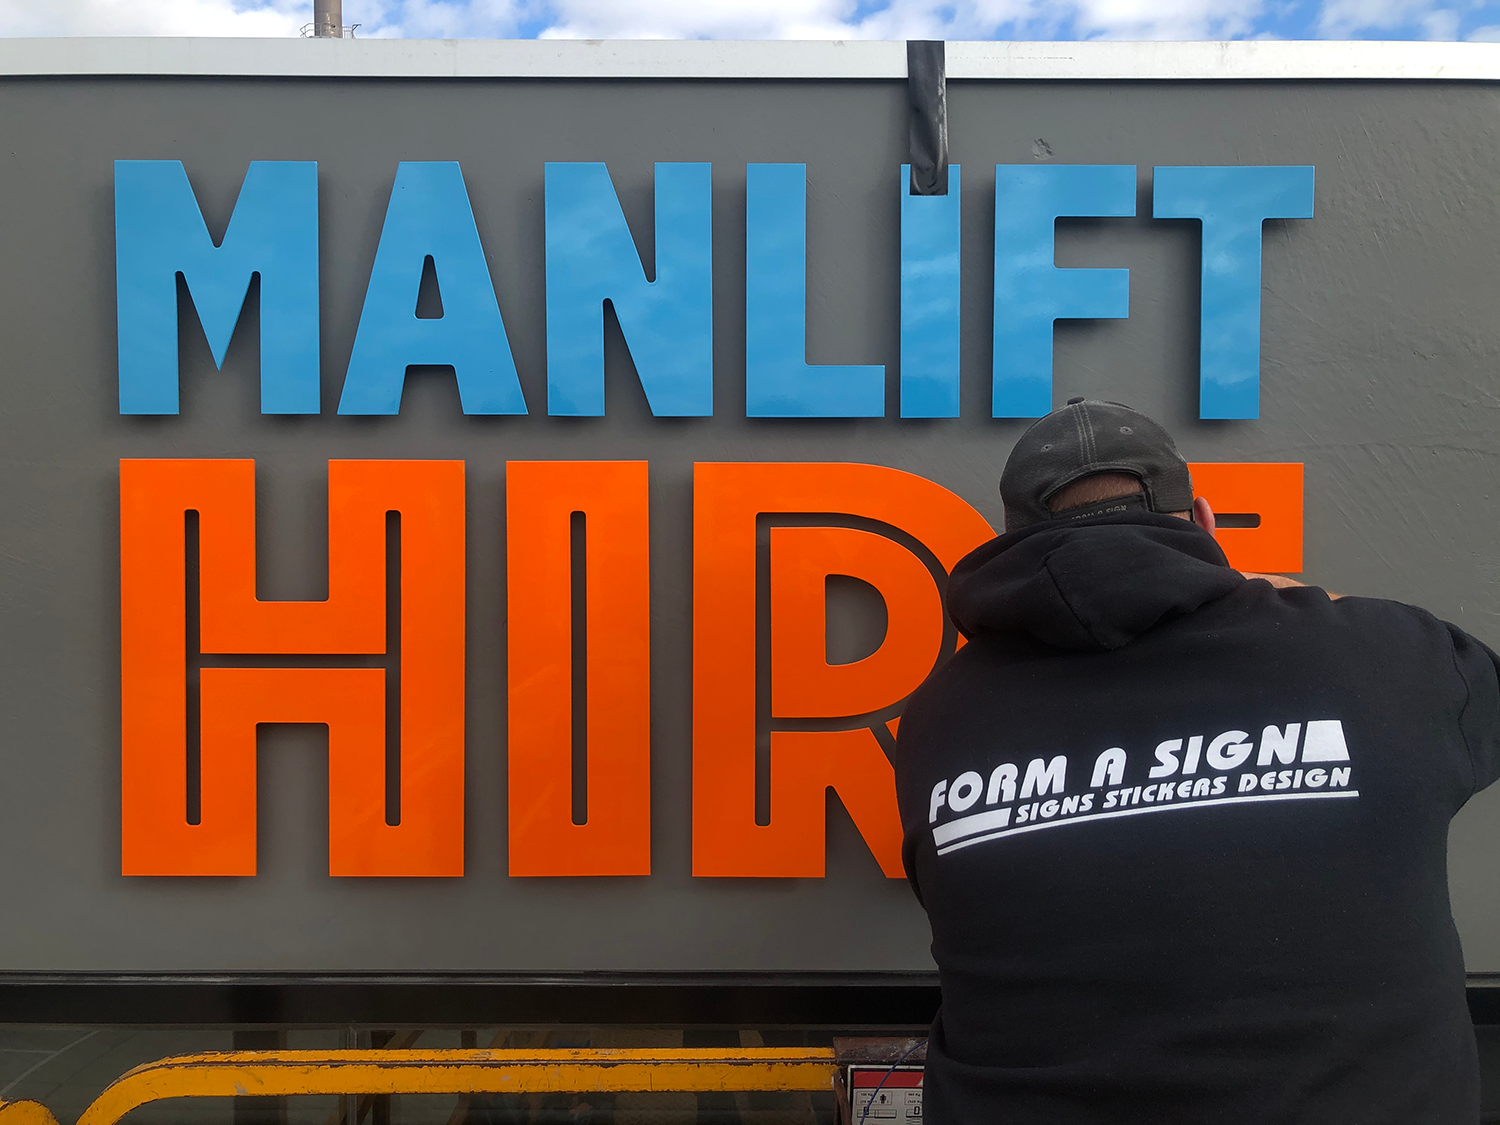 manlift hire external business signage being installed